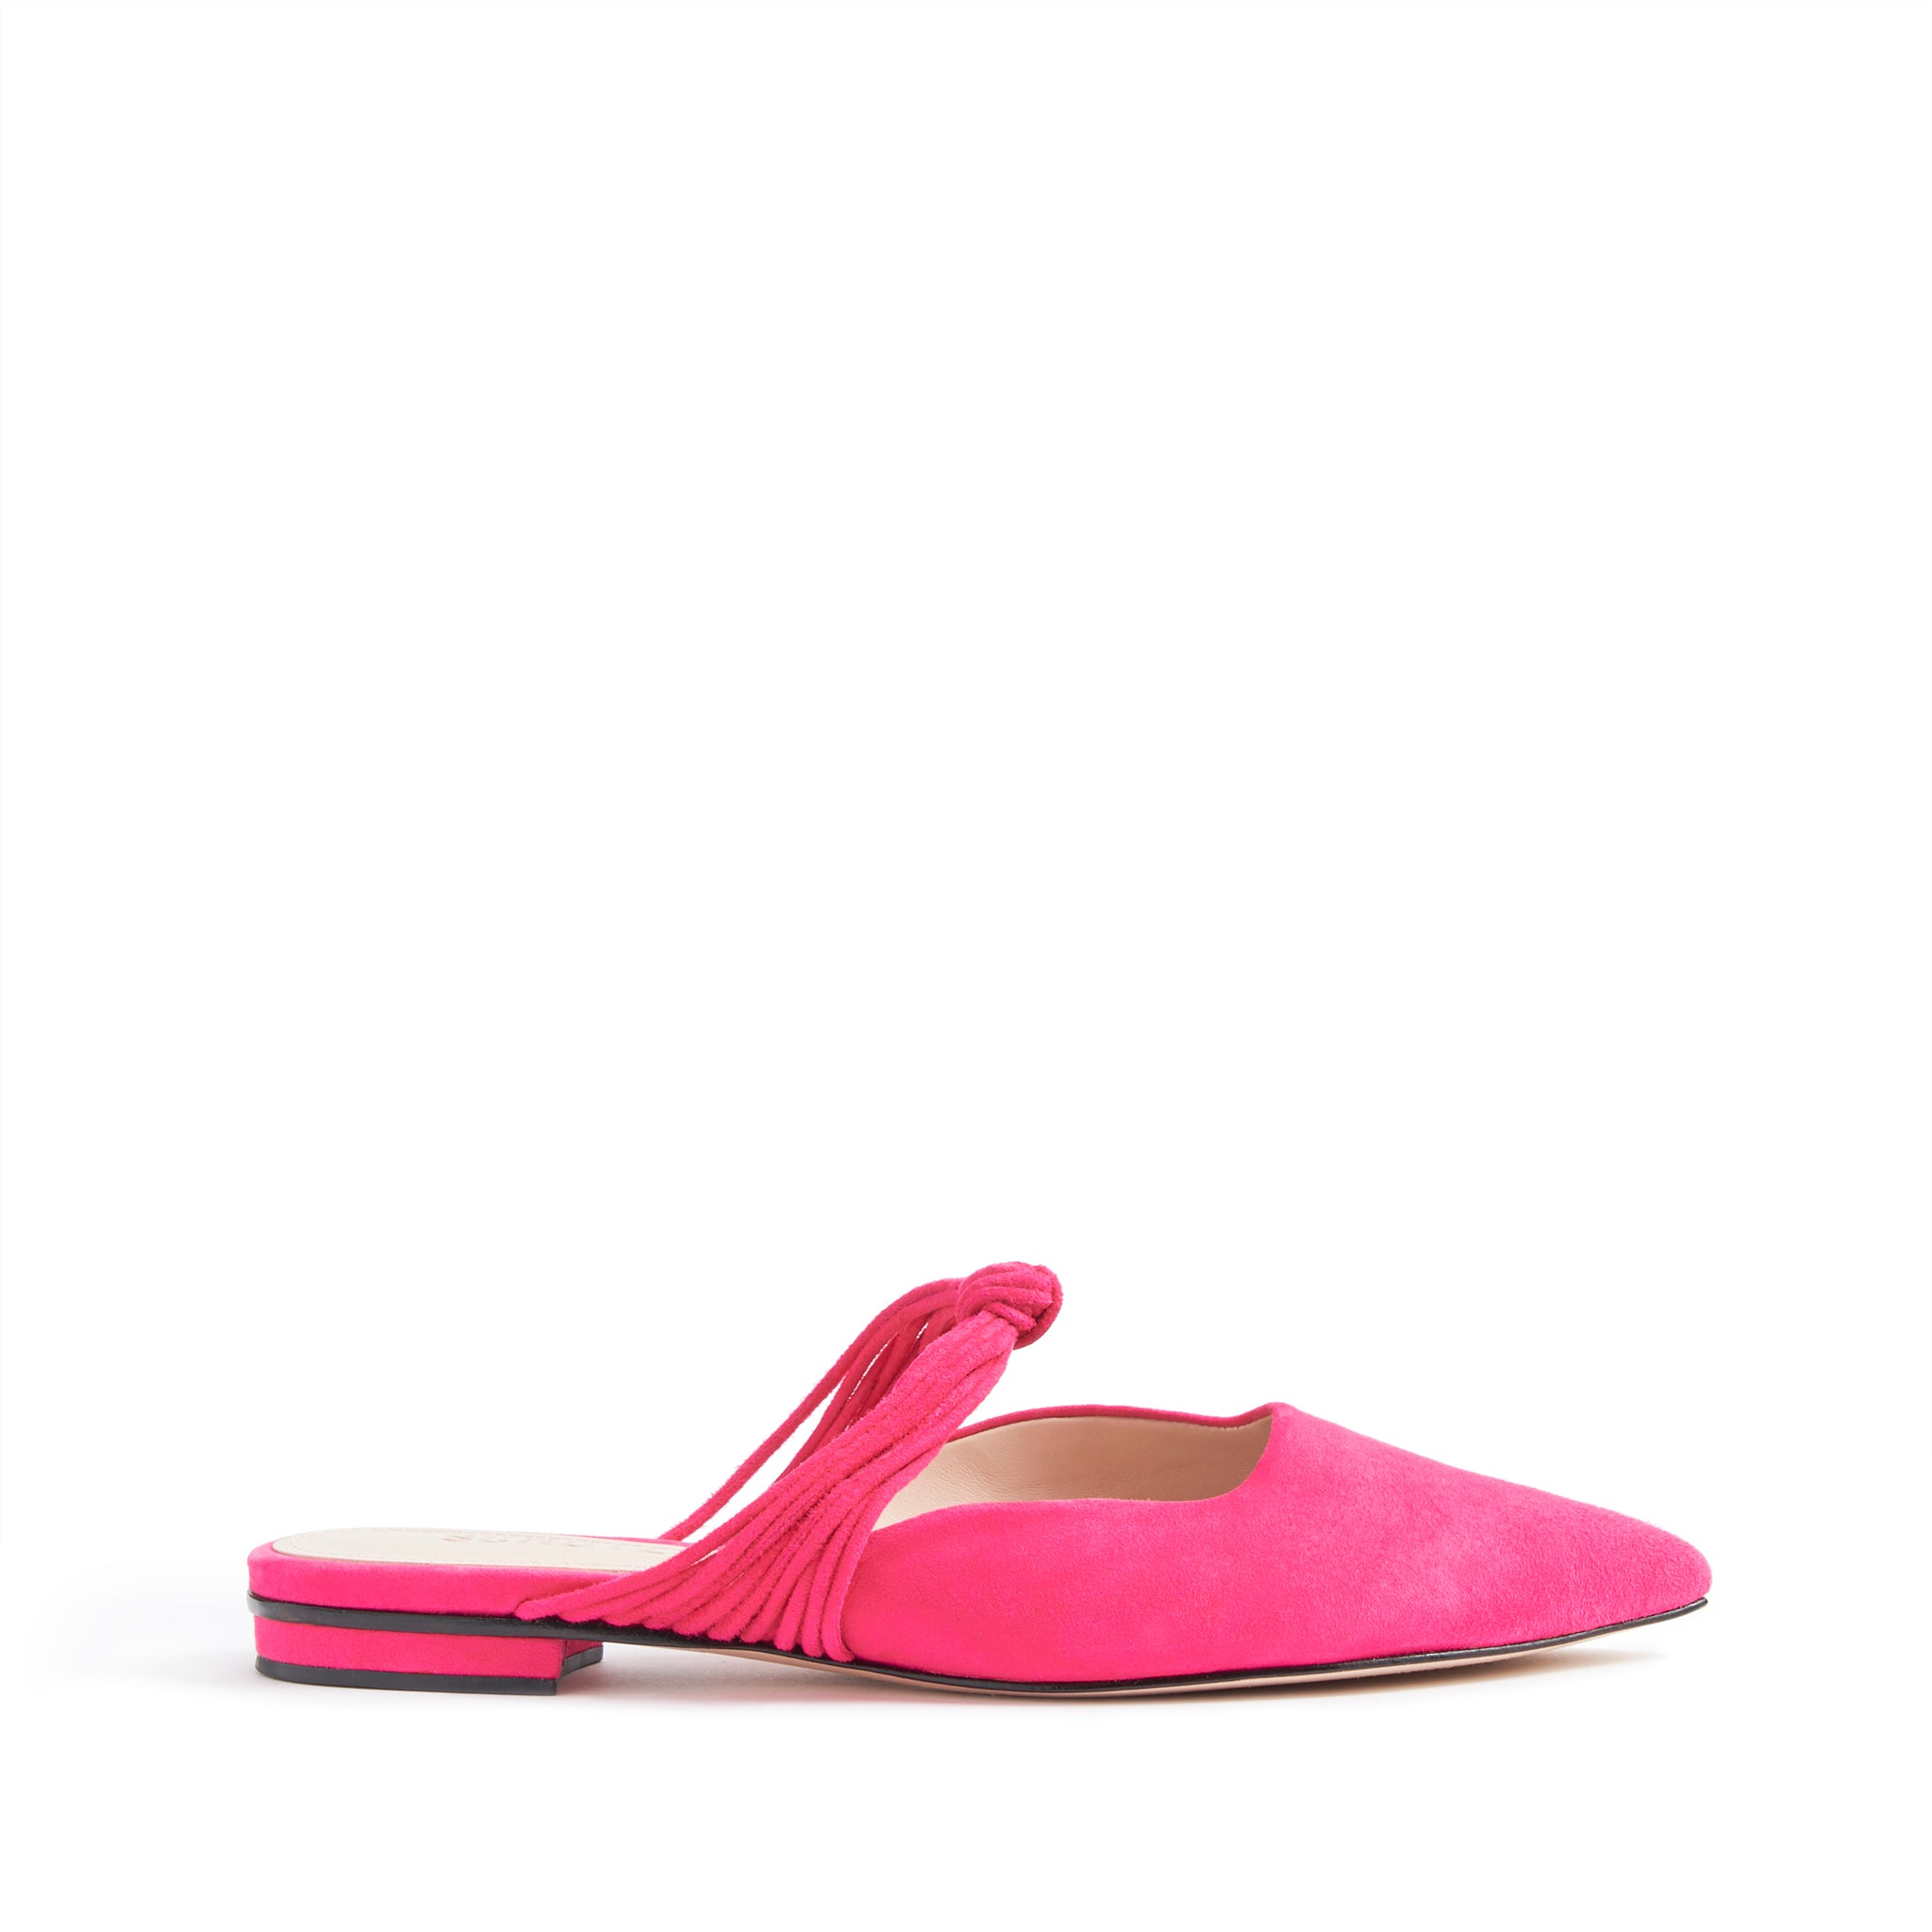 Patriane Flats Mules Vibrant Pink Suede